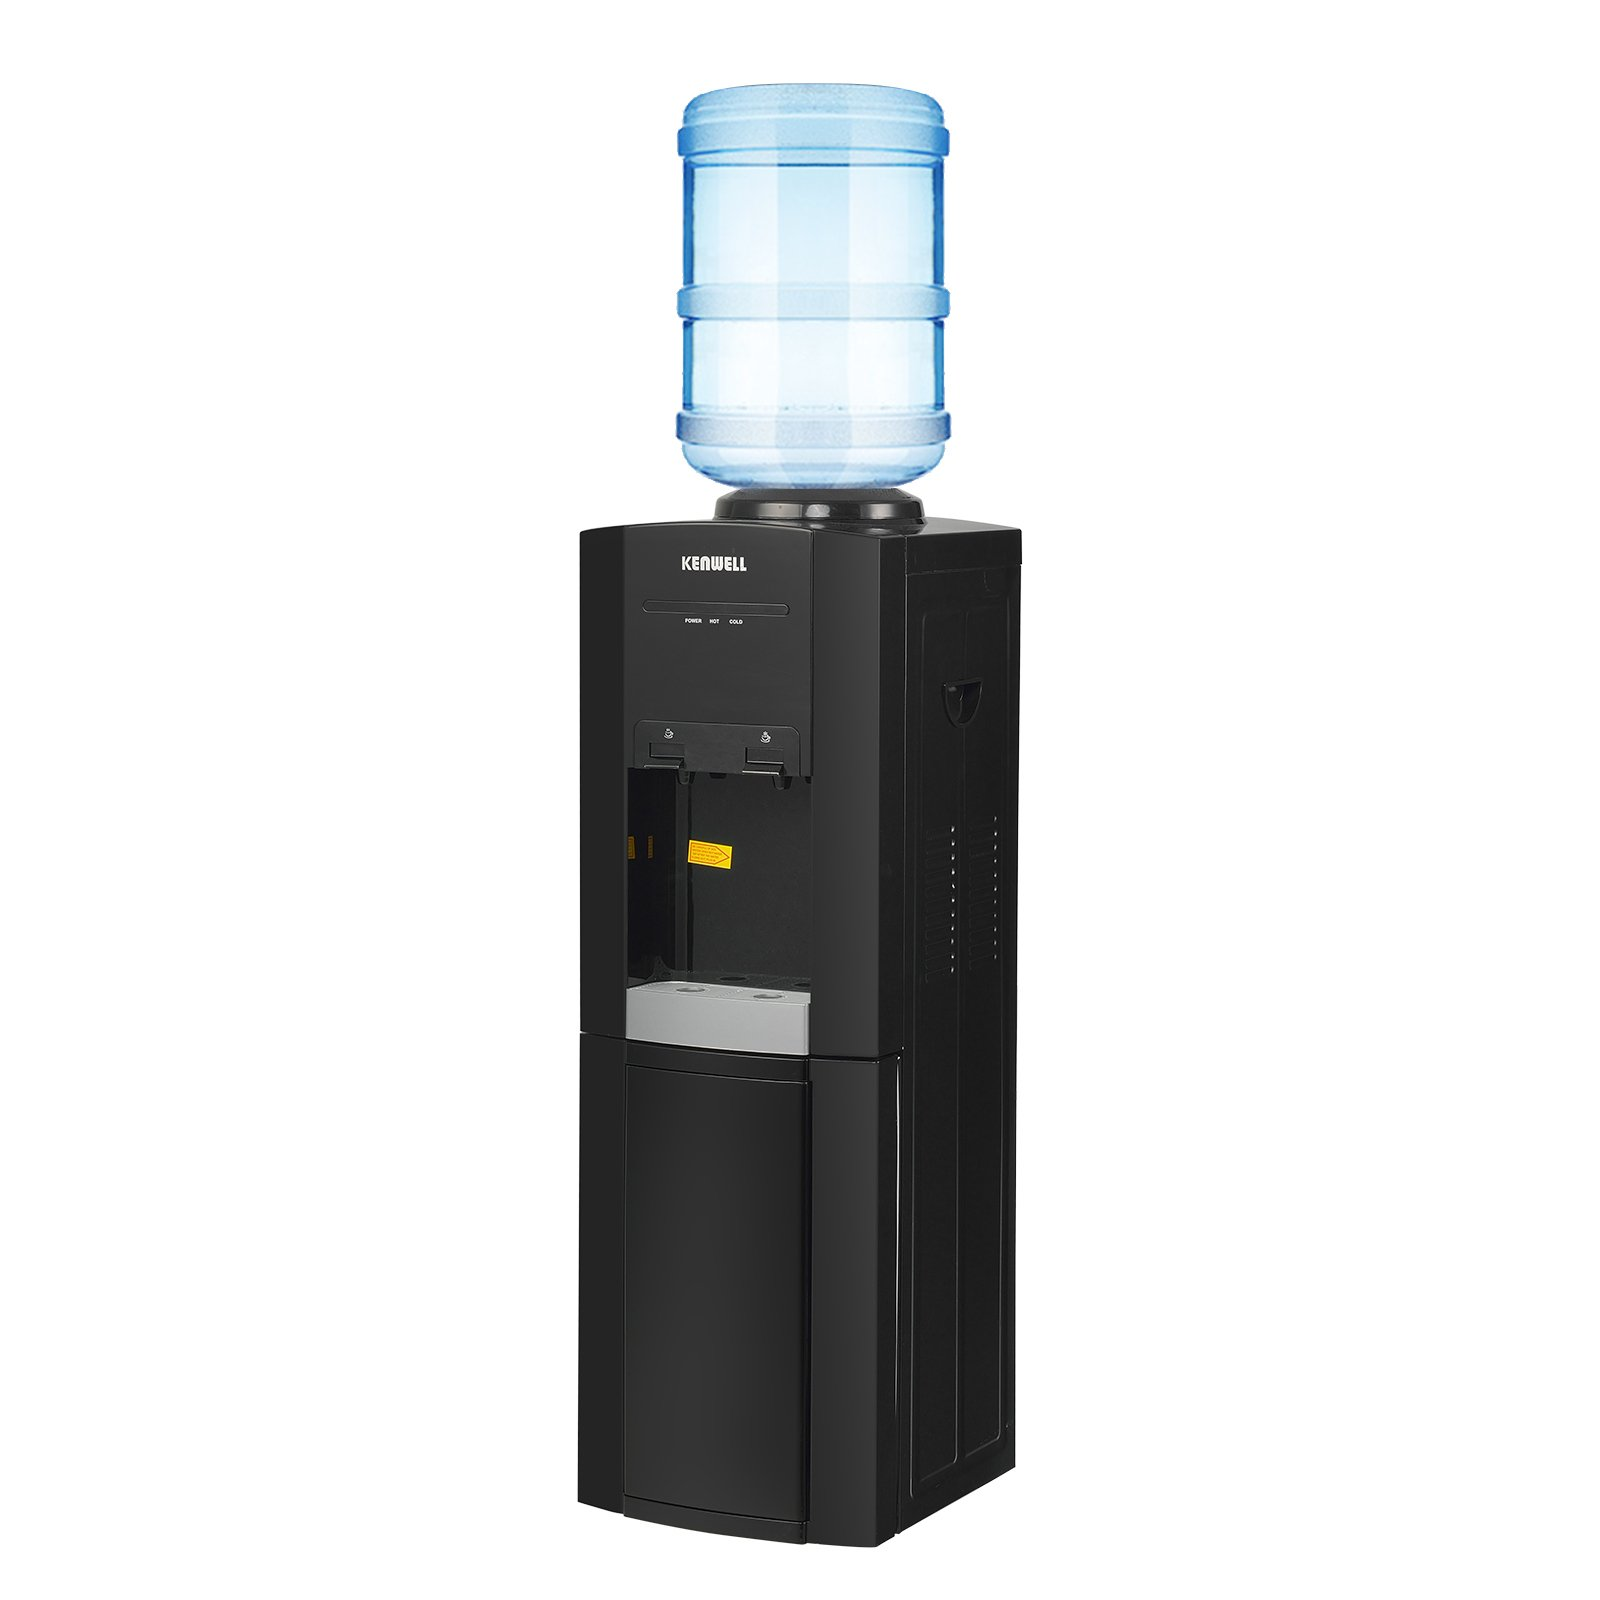 KUPPET 5 Gallon Water Cooler Dispenser-Top Loading Freestanding Water Dispenser with Storage Cabinet, Two Temperature Settings-Hot(85℃-95℃), Normal Temperature(10-15℃), BLACK